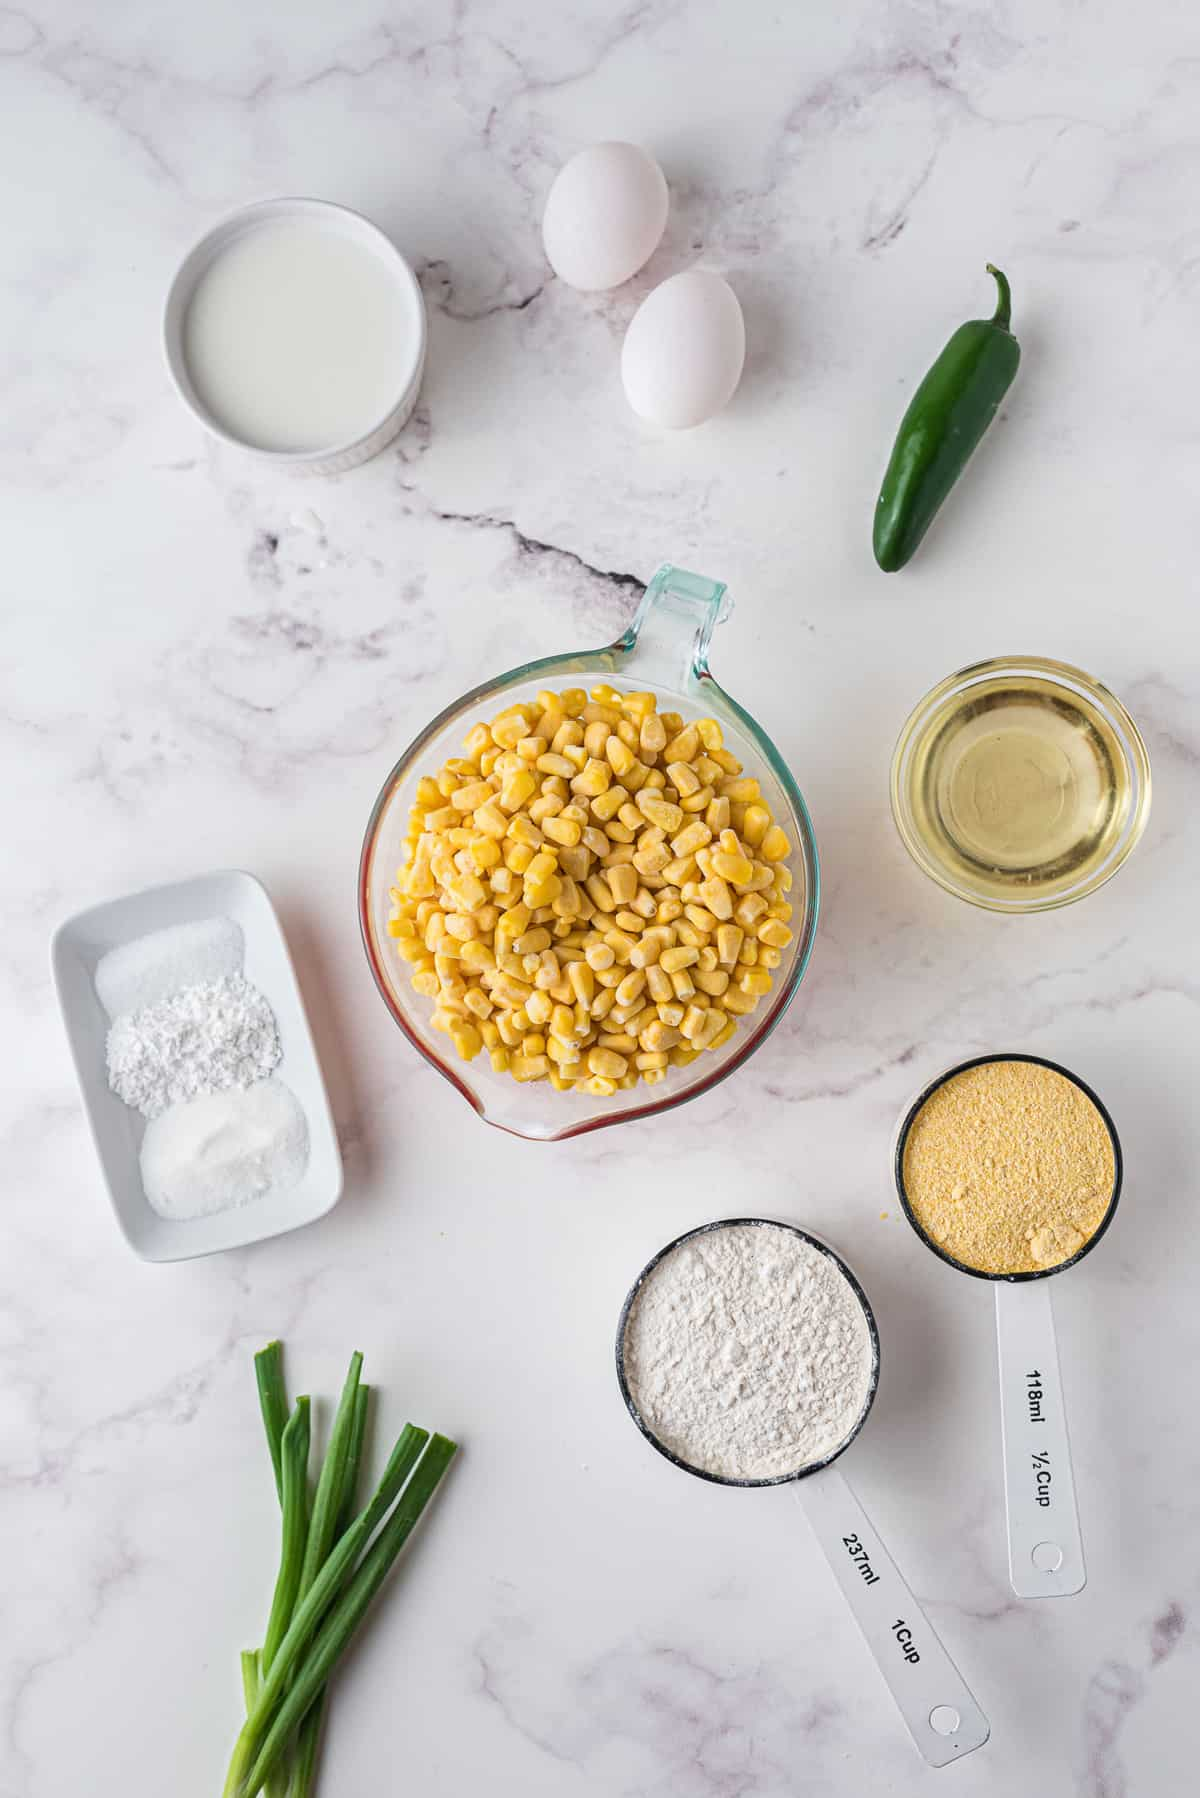 Overhead view of ingredients including corn kernels, green onion, jalapeno, egg.